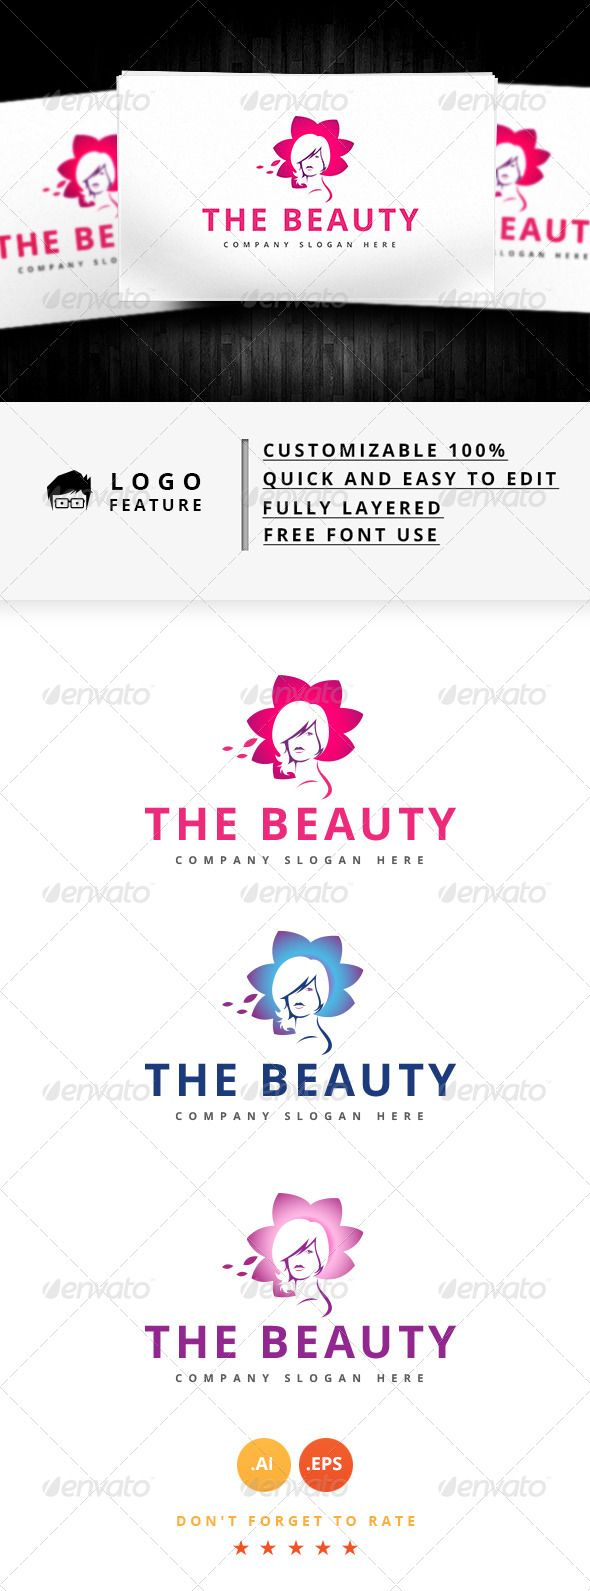 The Beauty Logo — Vector EPS #ocean logo #free logo • Available here → https://graphicriver.net/item/the-beauty-logo/8644834?ref=pxcr